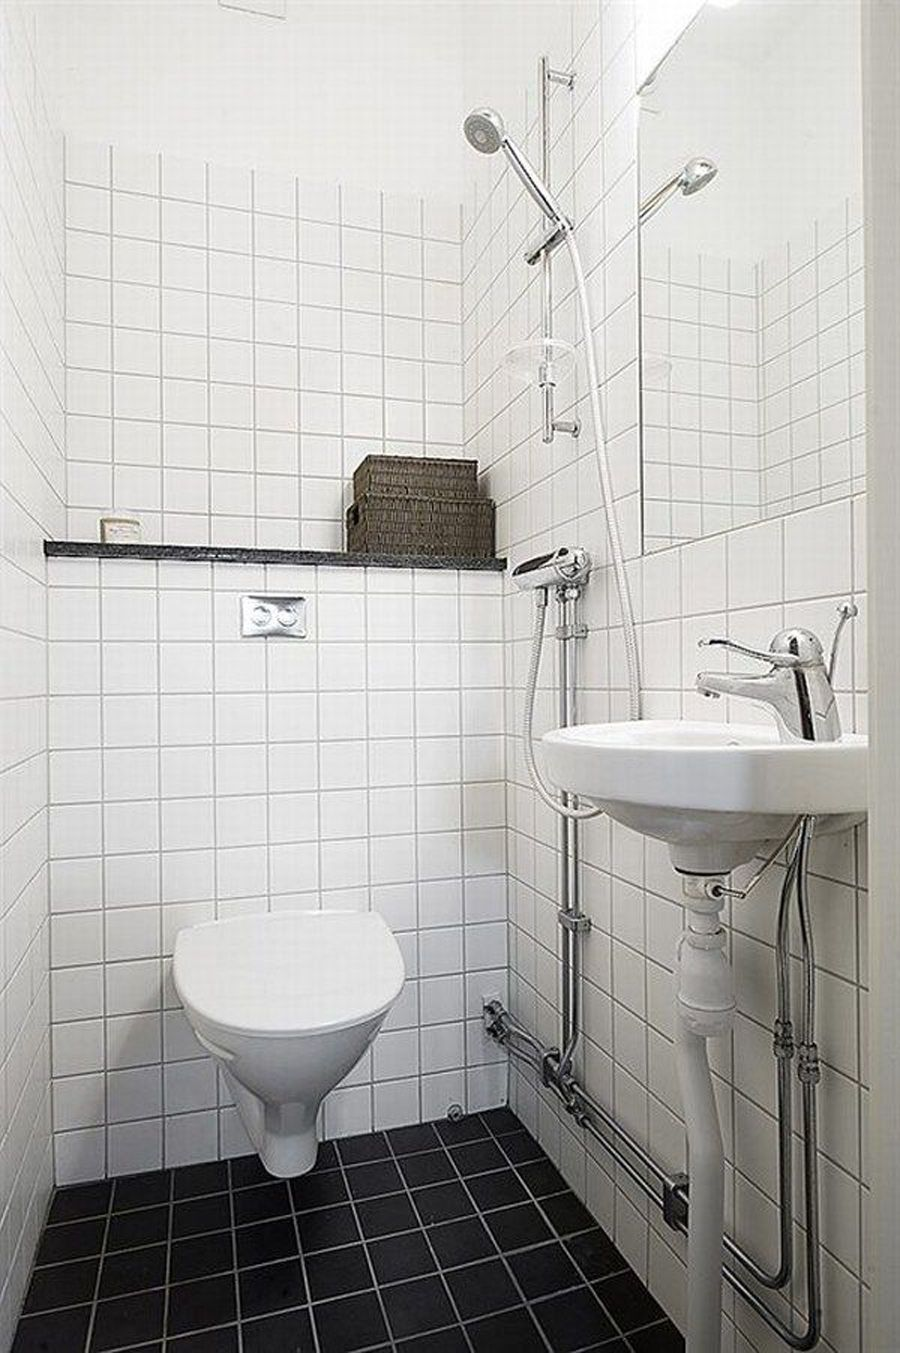 Bathroom ideas for small apartment bathrooms - Interesting White Tile Design Ideas For Shower Room Awesome Small Bathroom With Black Square Tiles